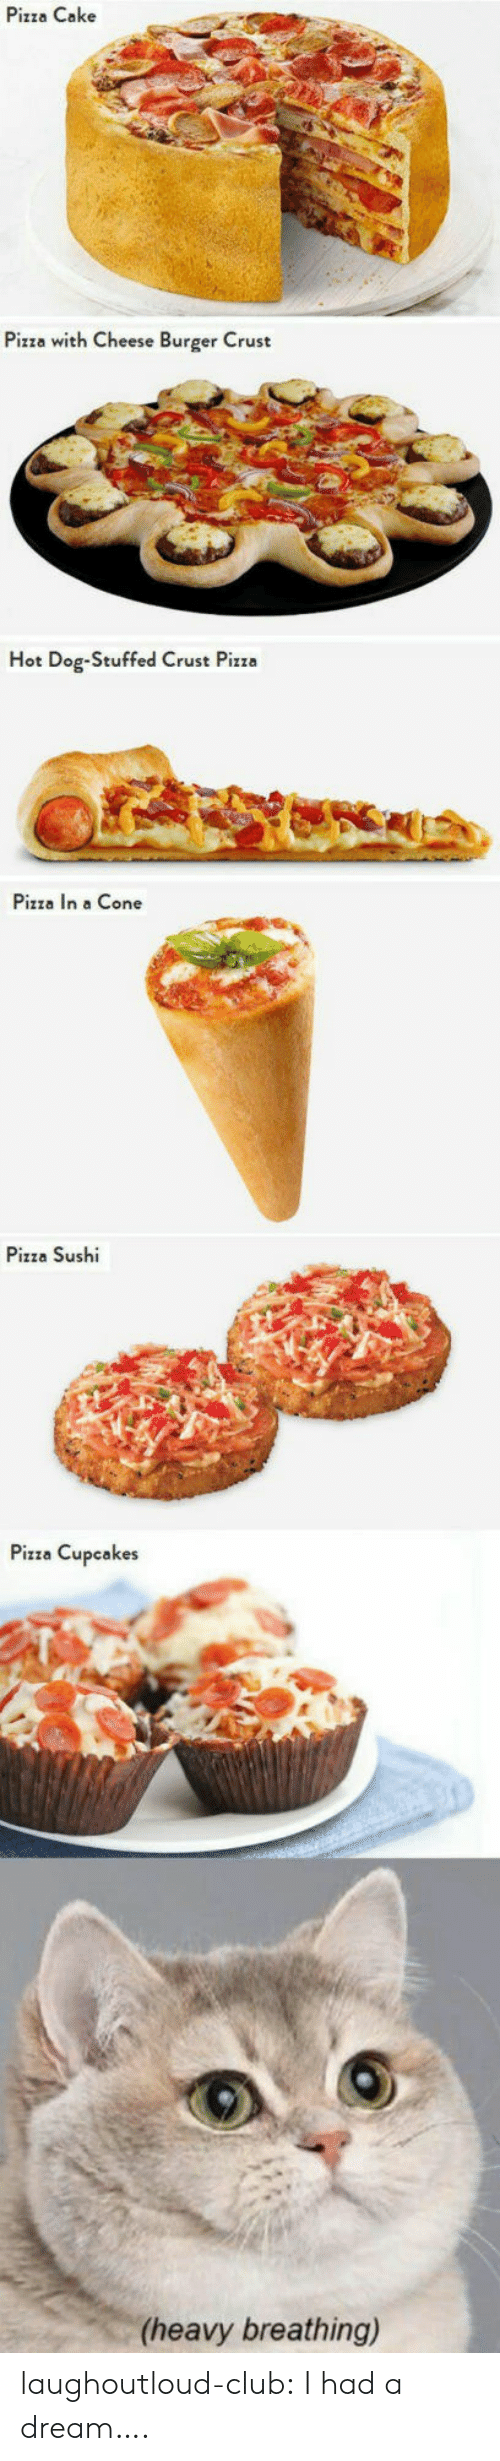 A Dream, Club, and Pizza: Pizza Cake  Pizza with Cheese Burger Crust  Hot Dog-Stuffed Crust Pizza  Pizza In a Cone  Pizza Sushi  Pizza Cupcakes  (heavy breathing) laughoutloud-club:  I had a dream….